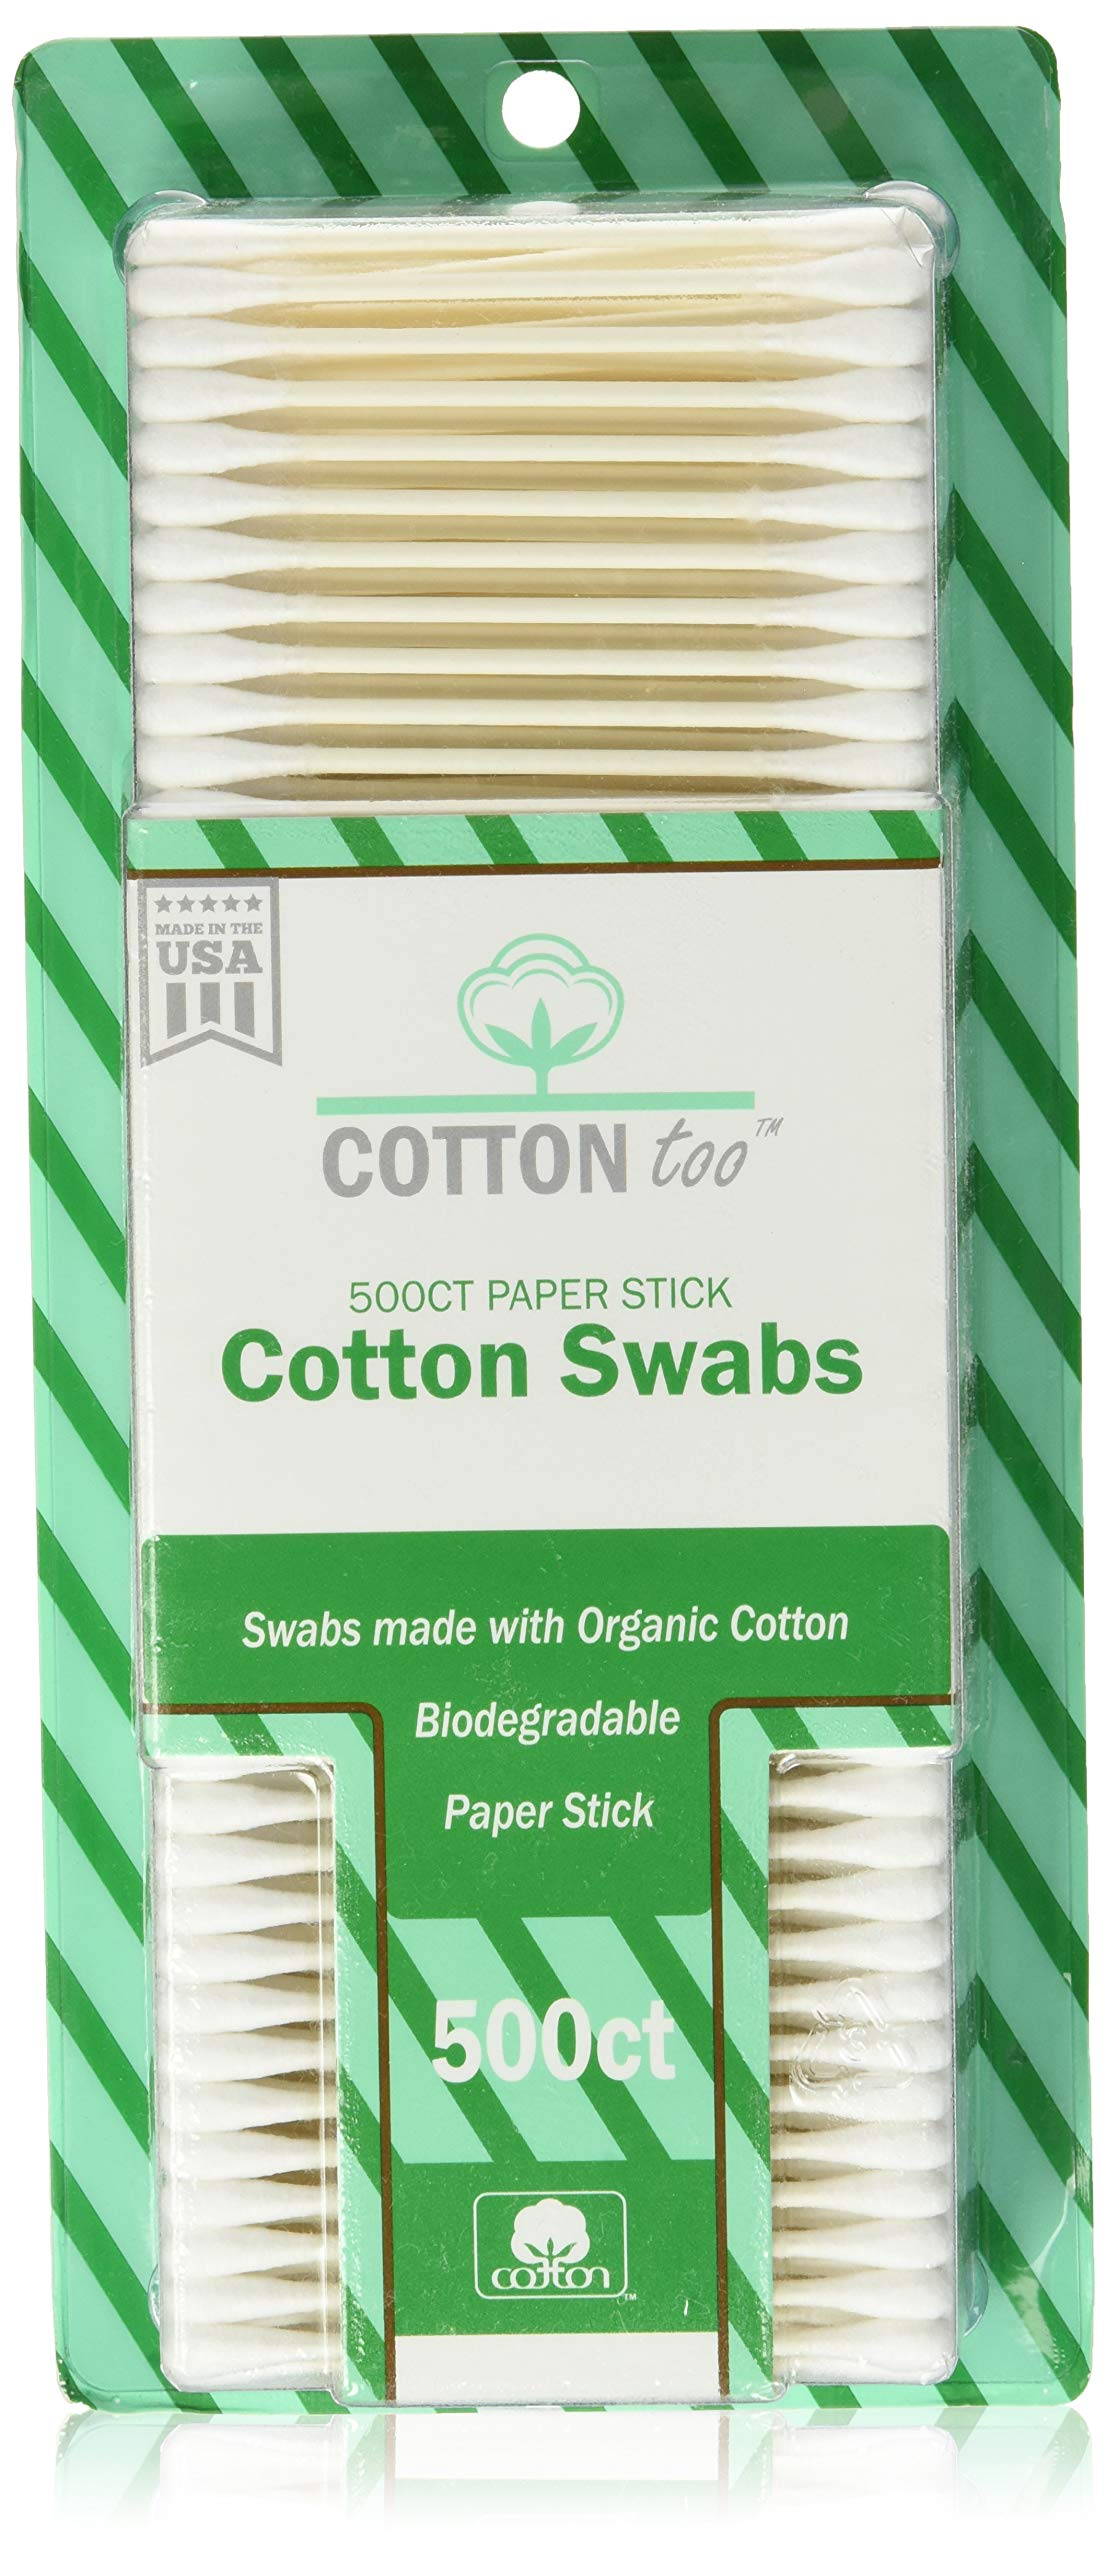 Cotton Too 500 Count Organic Cotton Swabs, 2 Pack